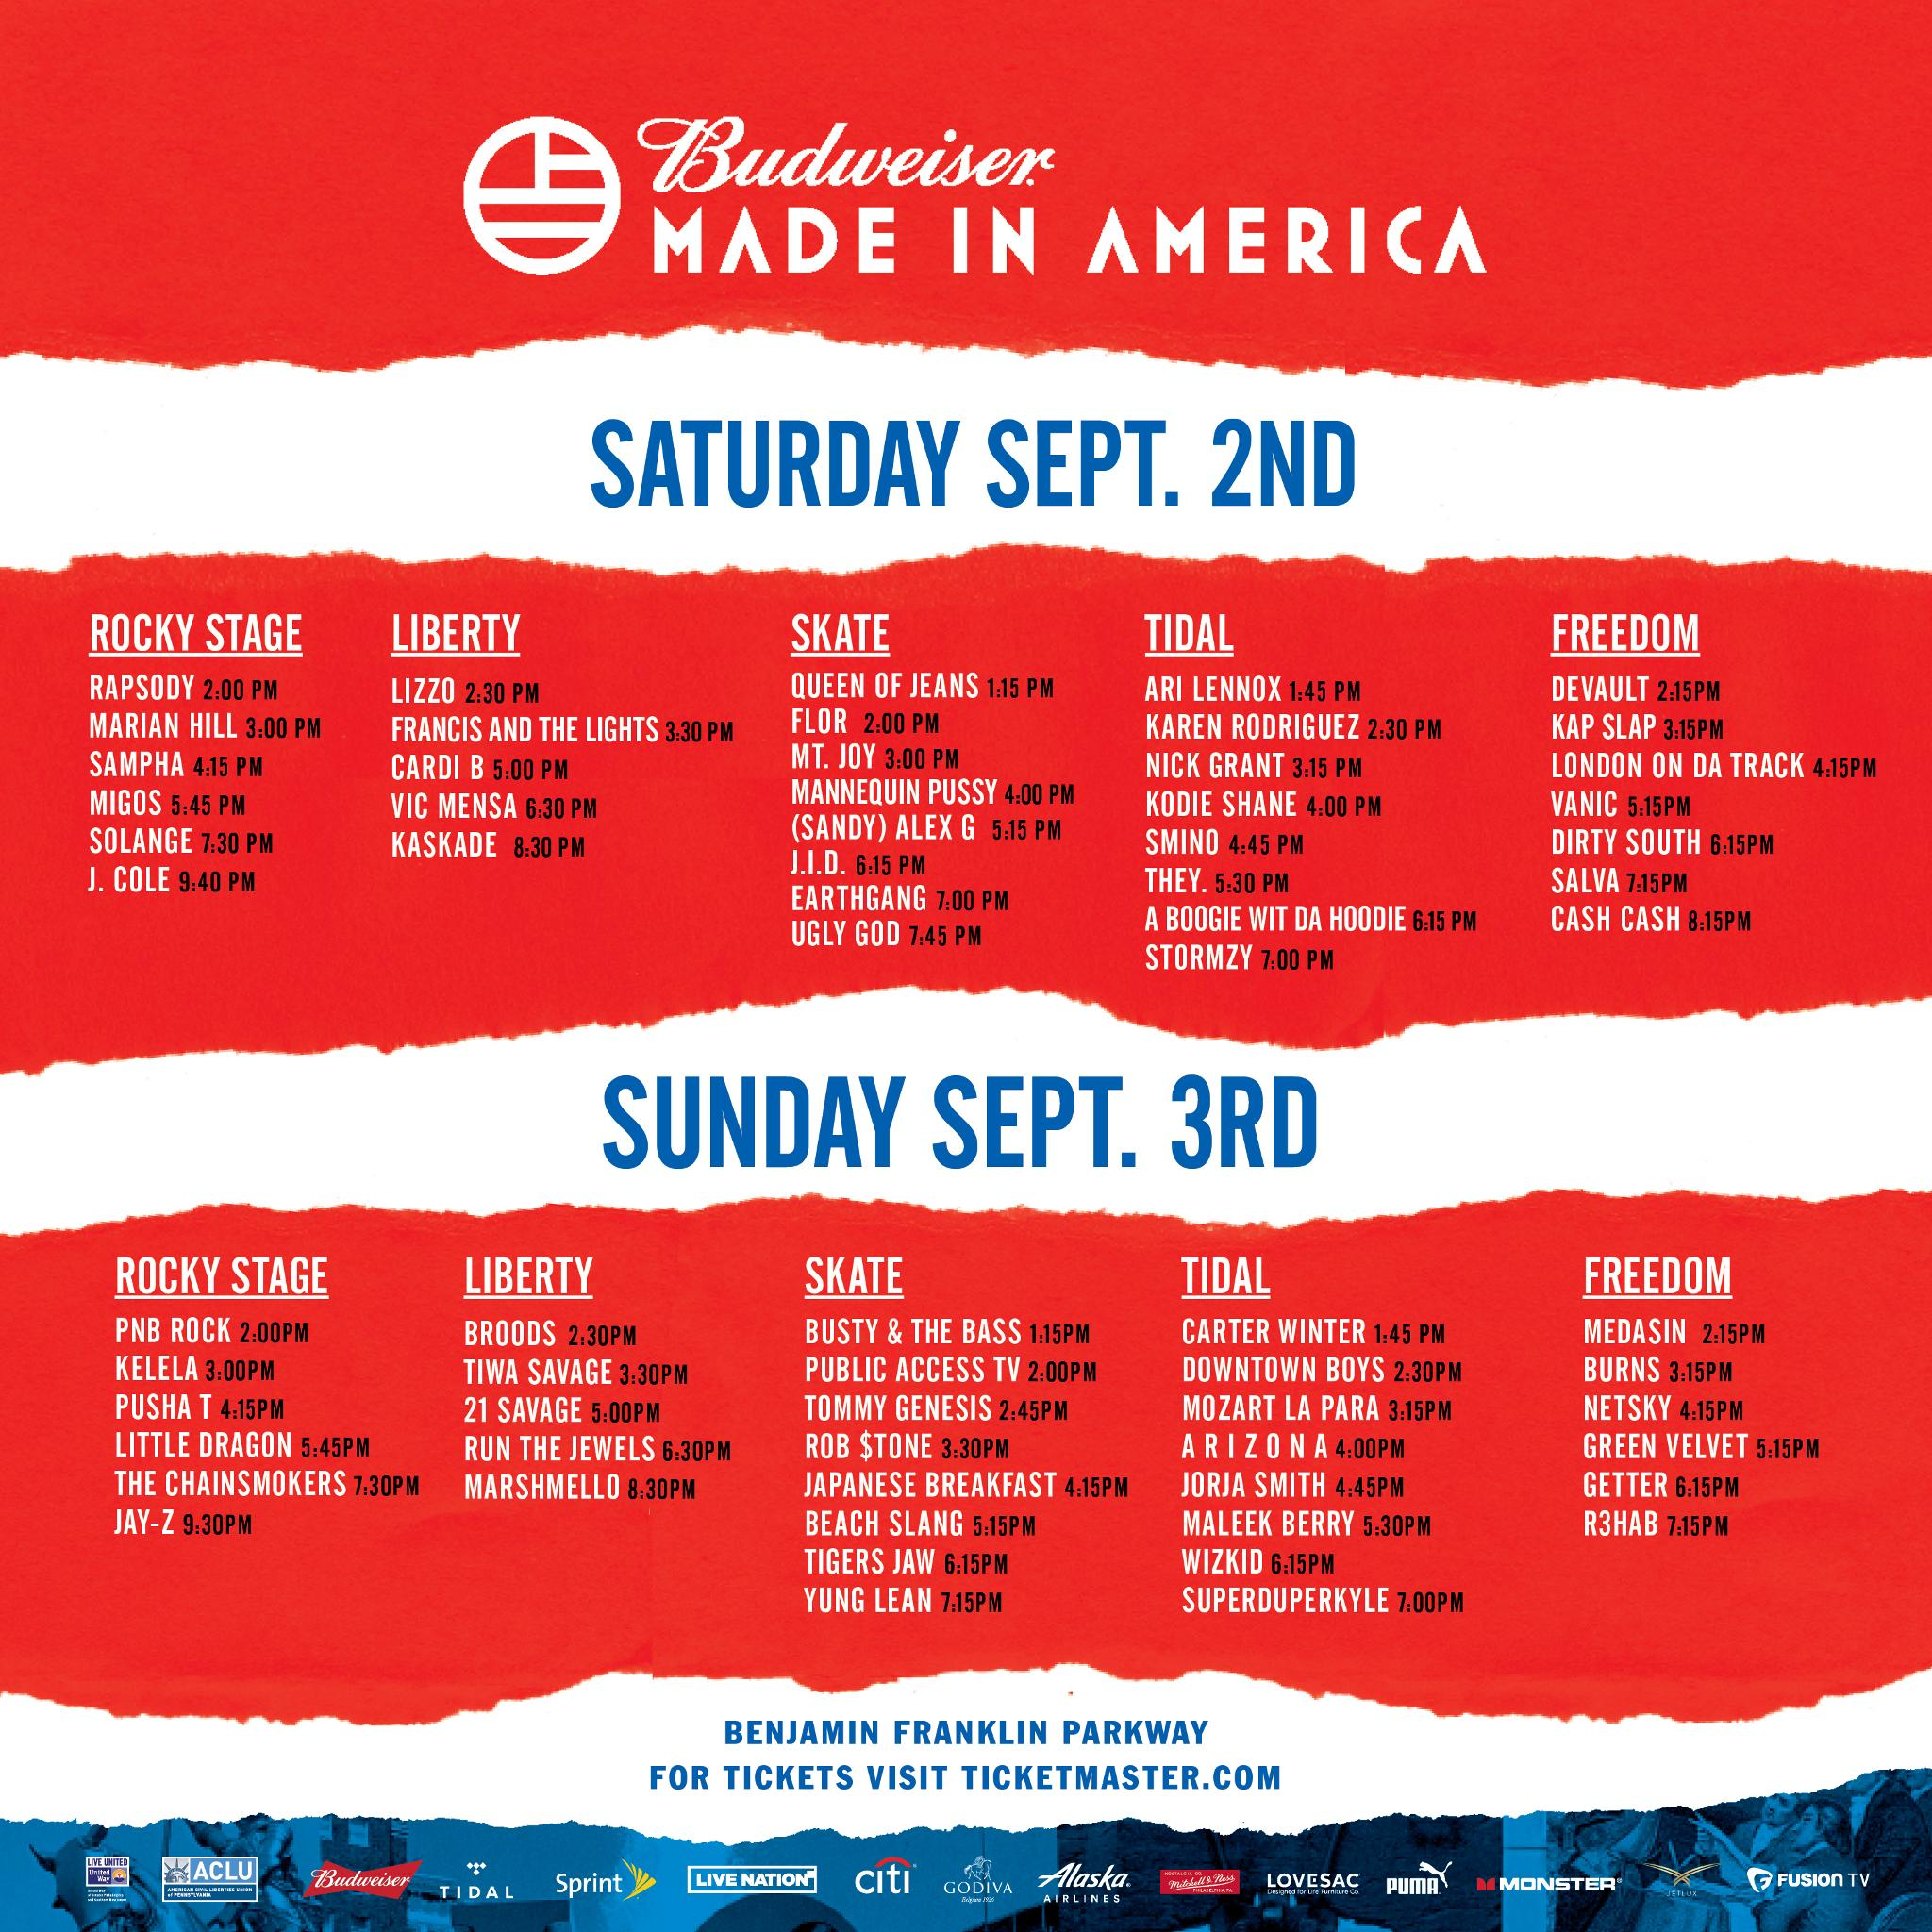 The @017 Budweiser Made In America schedule.